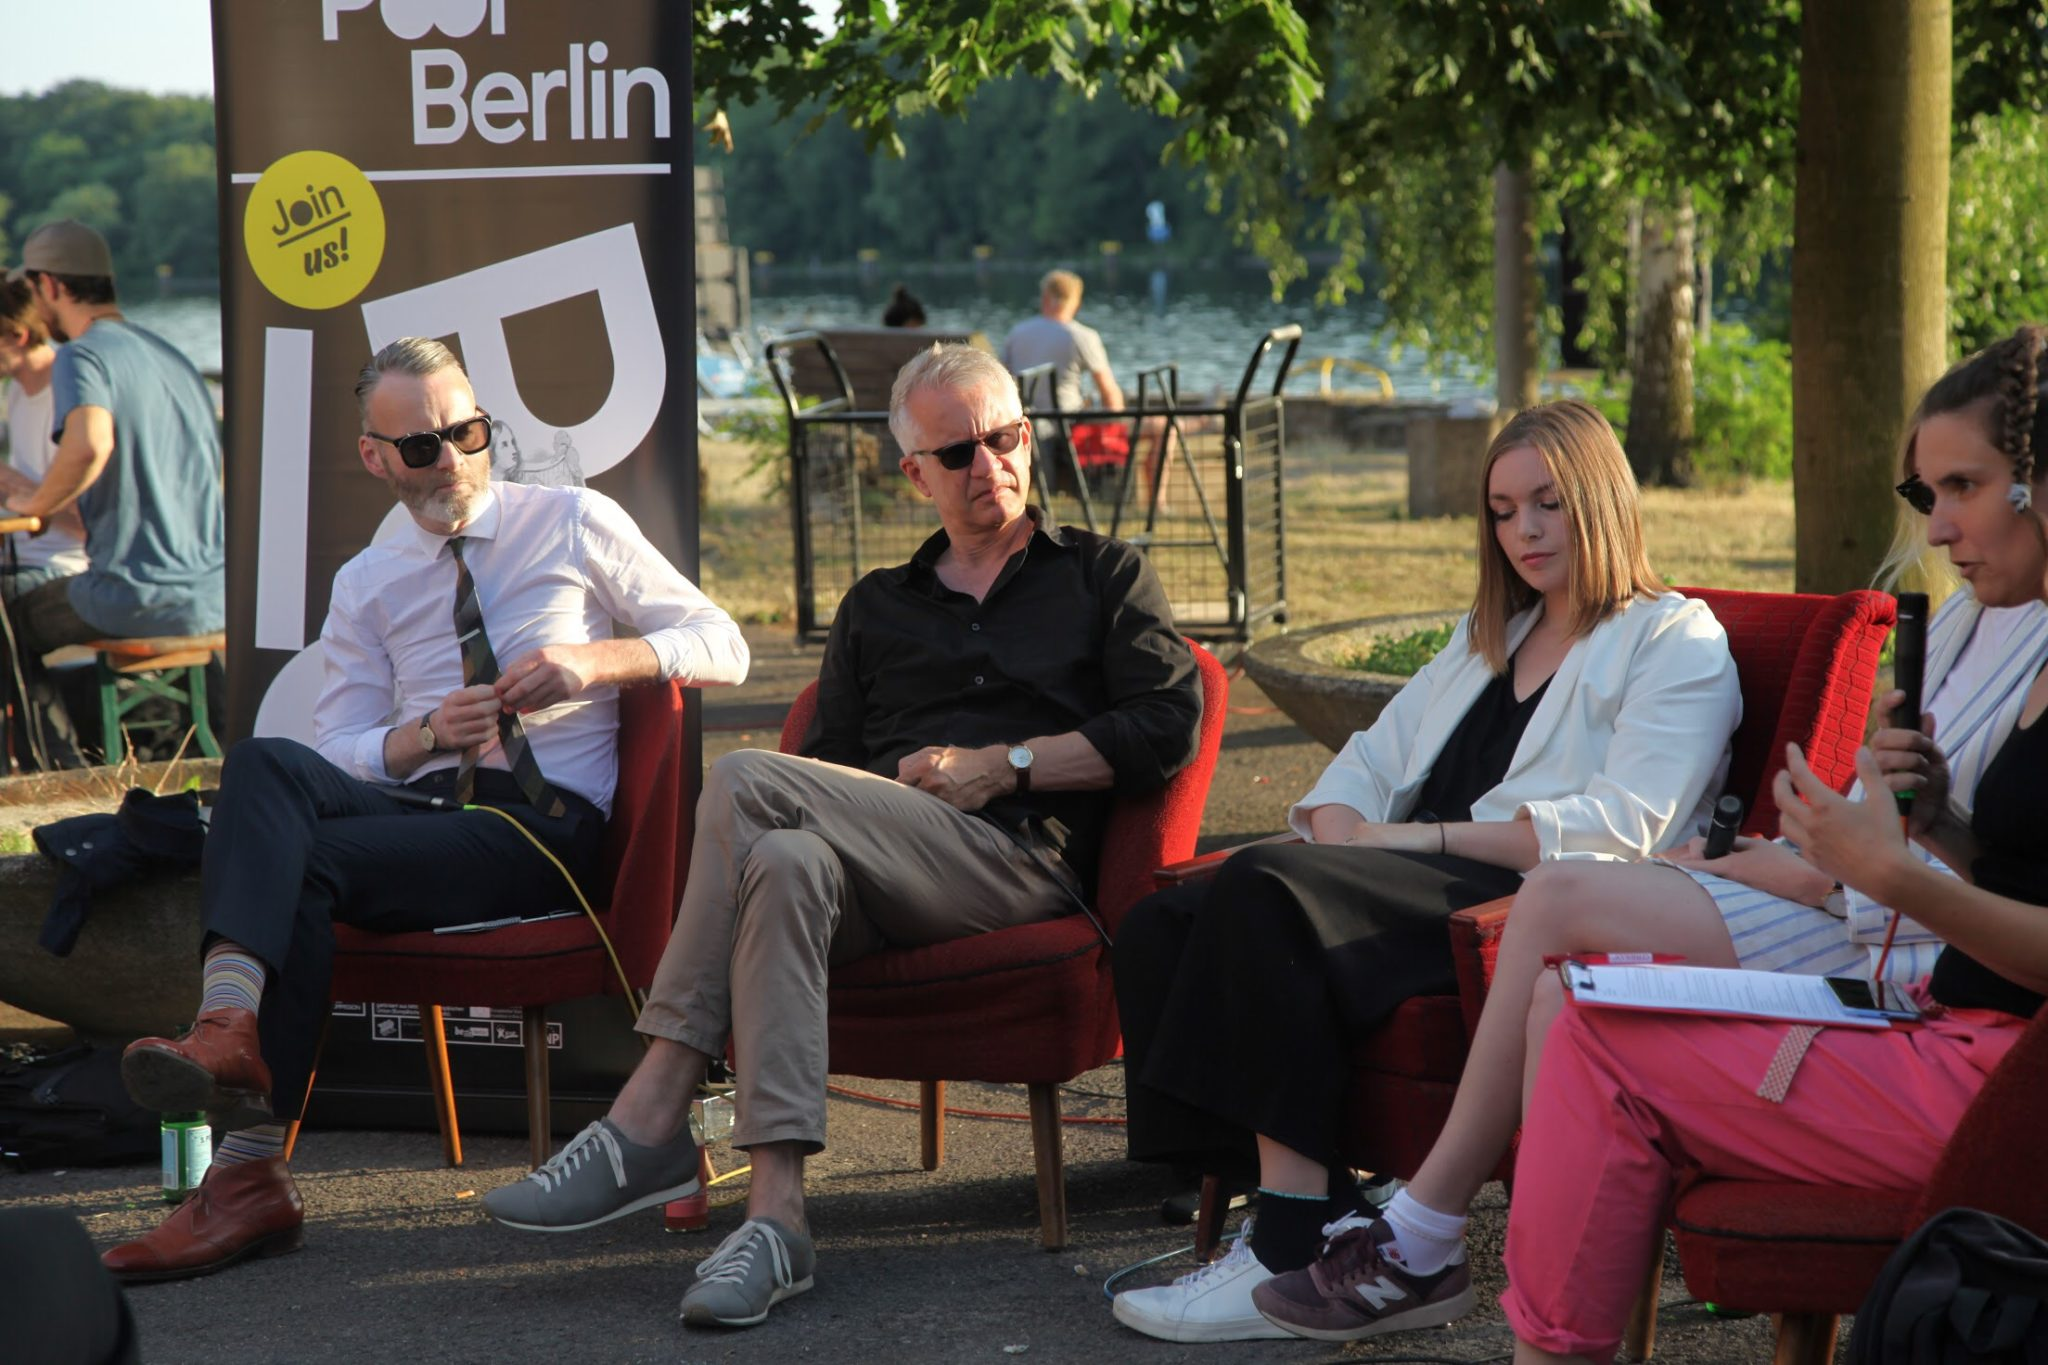 Music Pool Berlin x dBs Music Community Evening - mental health panel talk